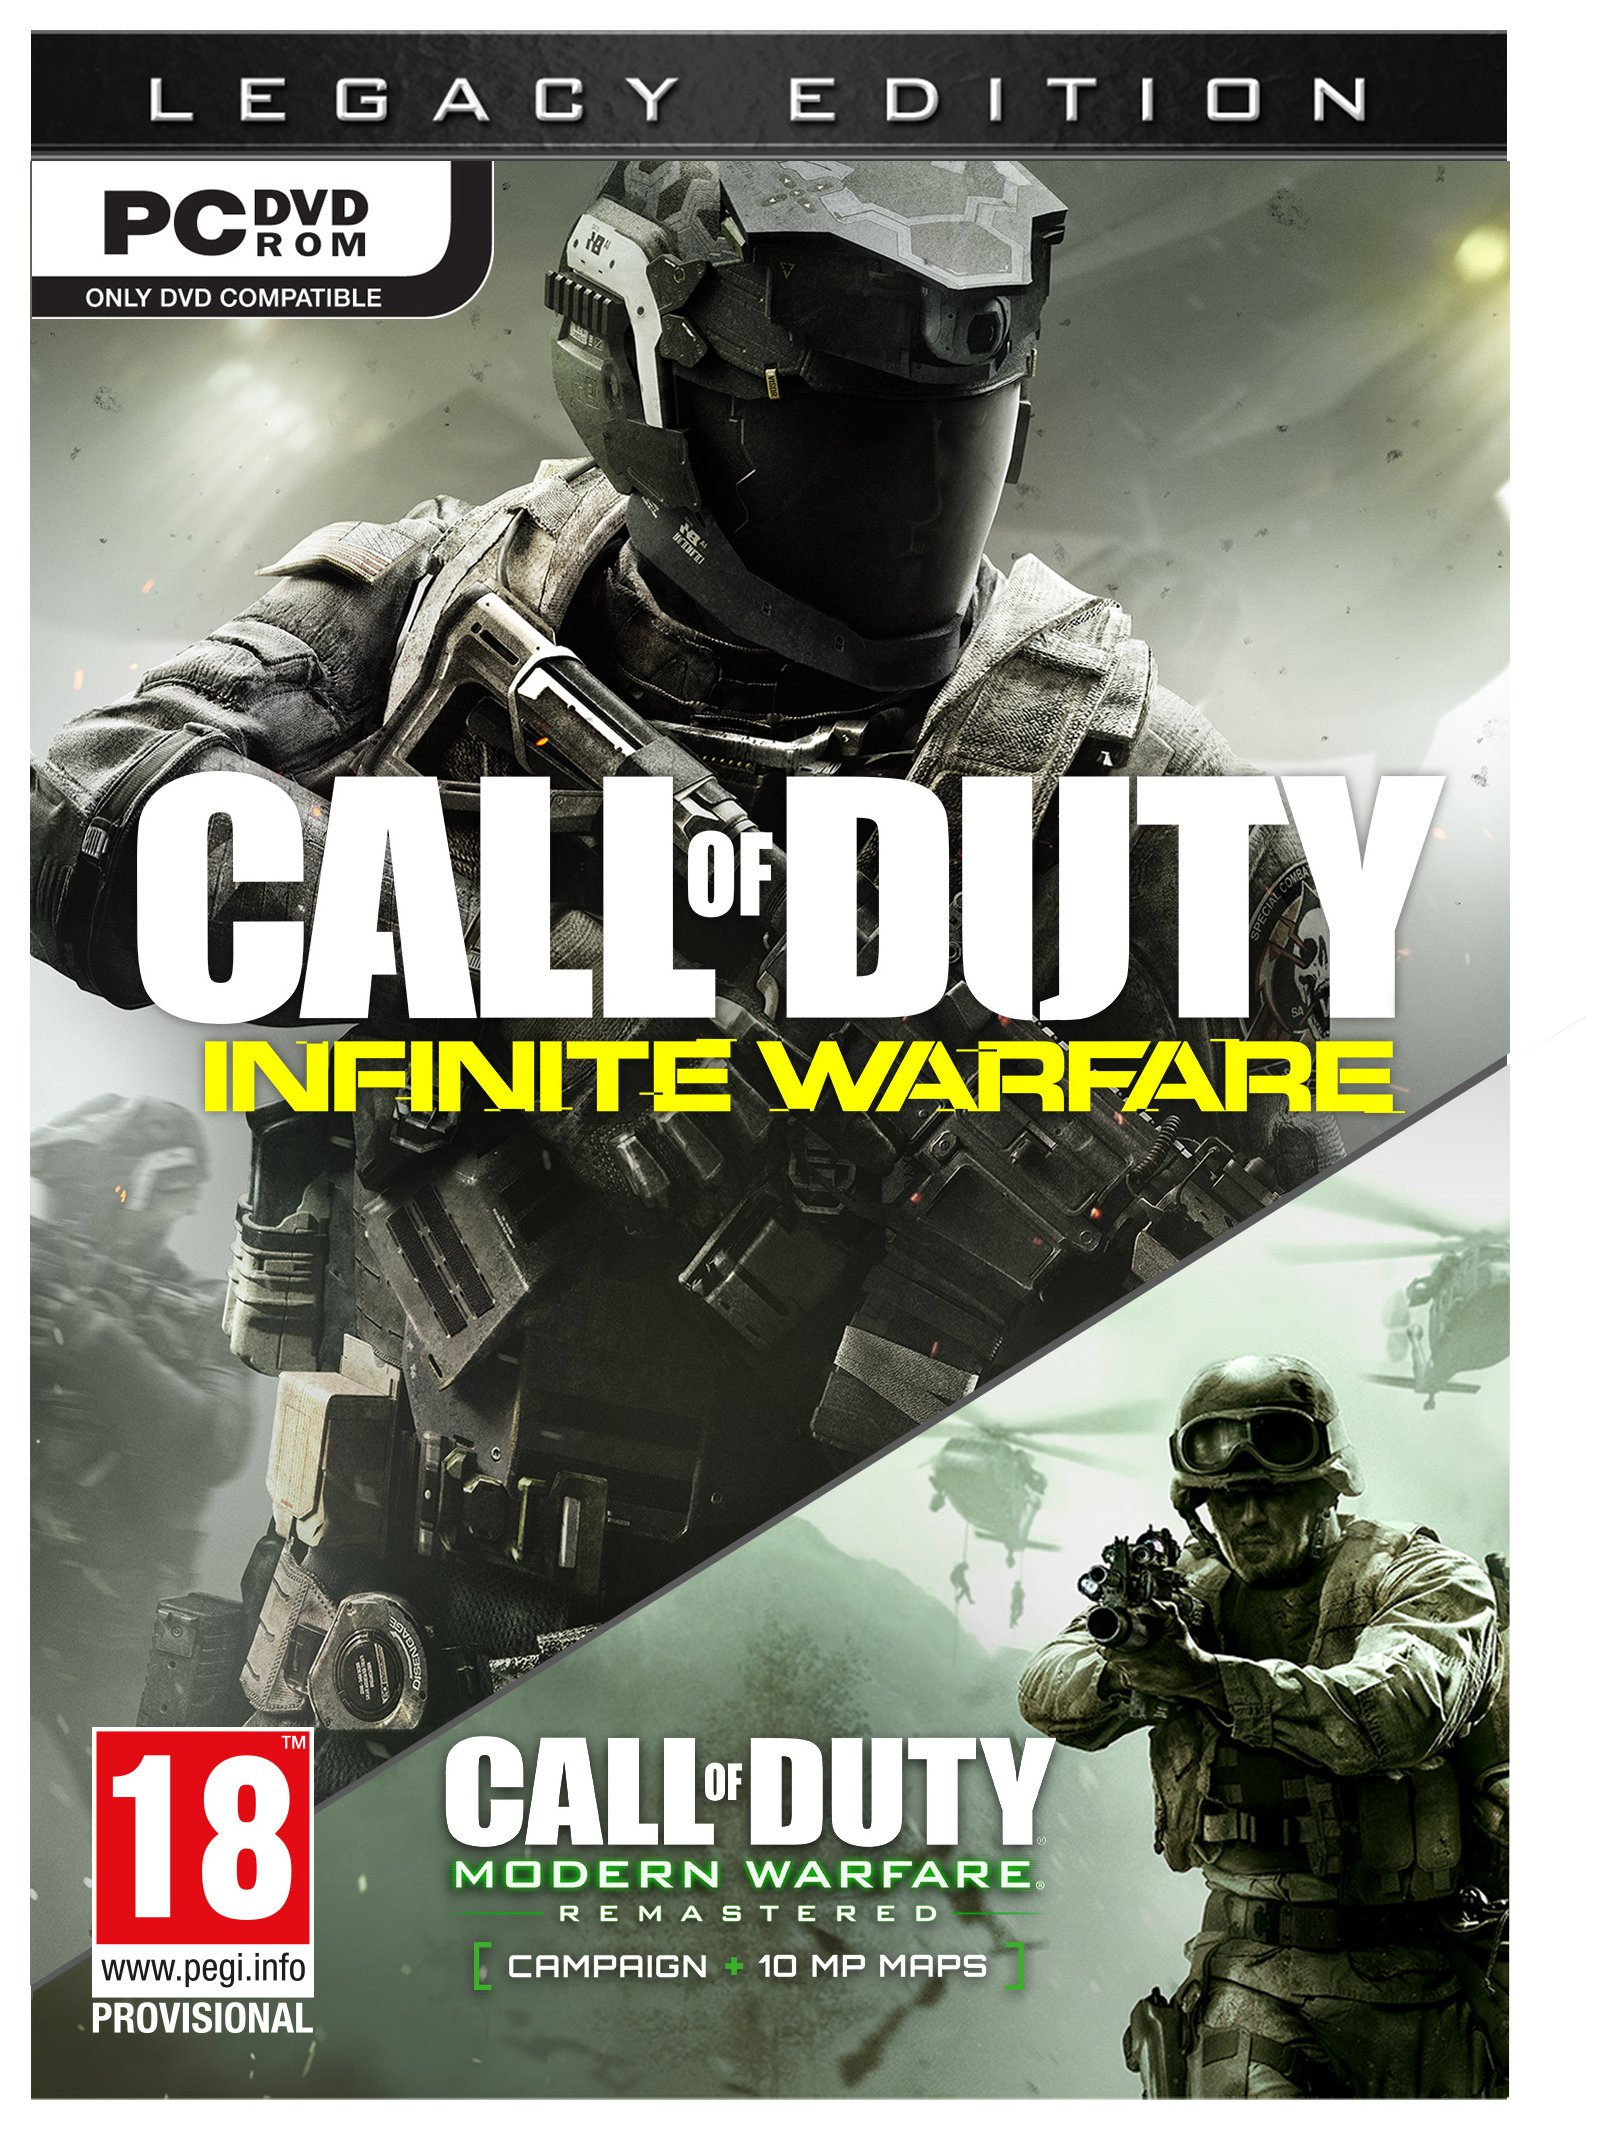 Activision Call of Duty - Infinite Warfare Legacy Edition- PC Game